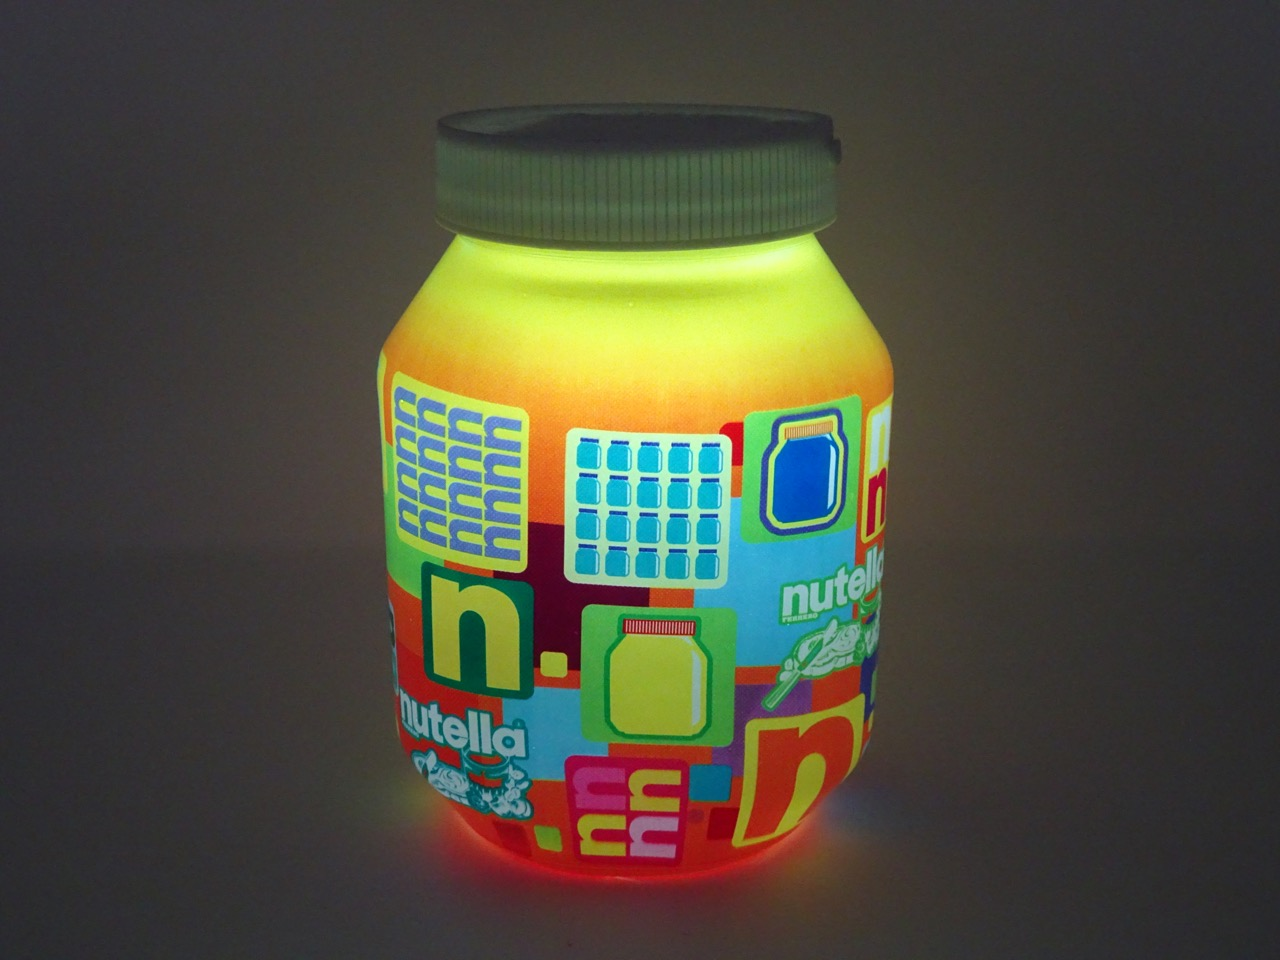 Unboxing ma lampe nutella est arriv e surprise - Lampe pot de nutella ...